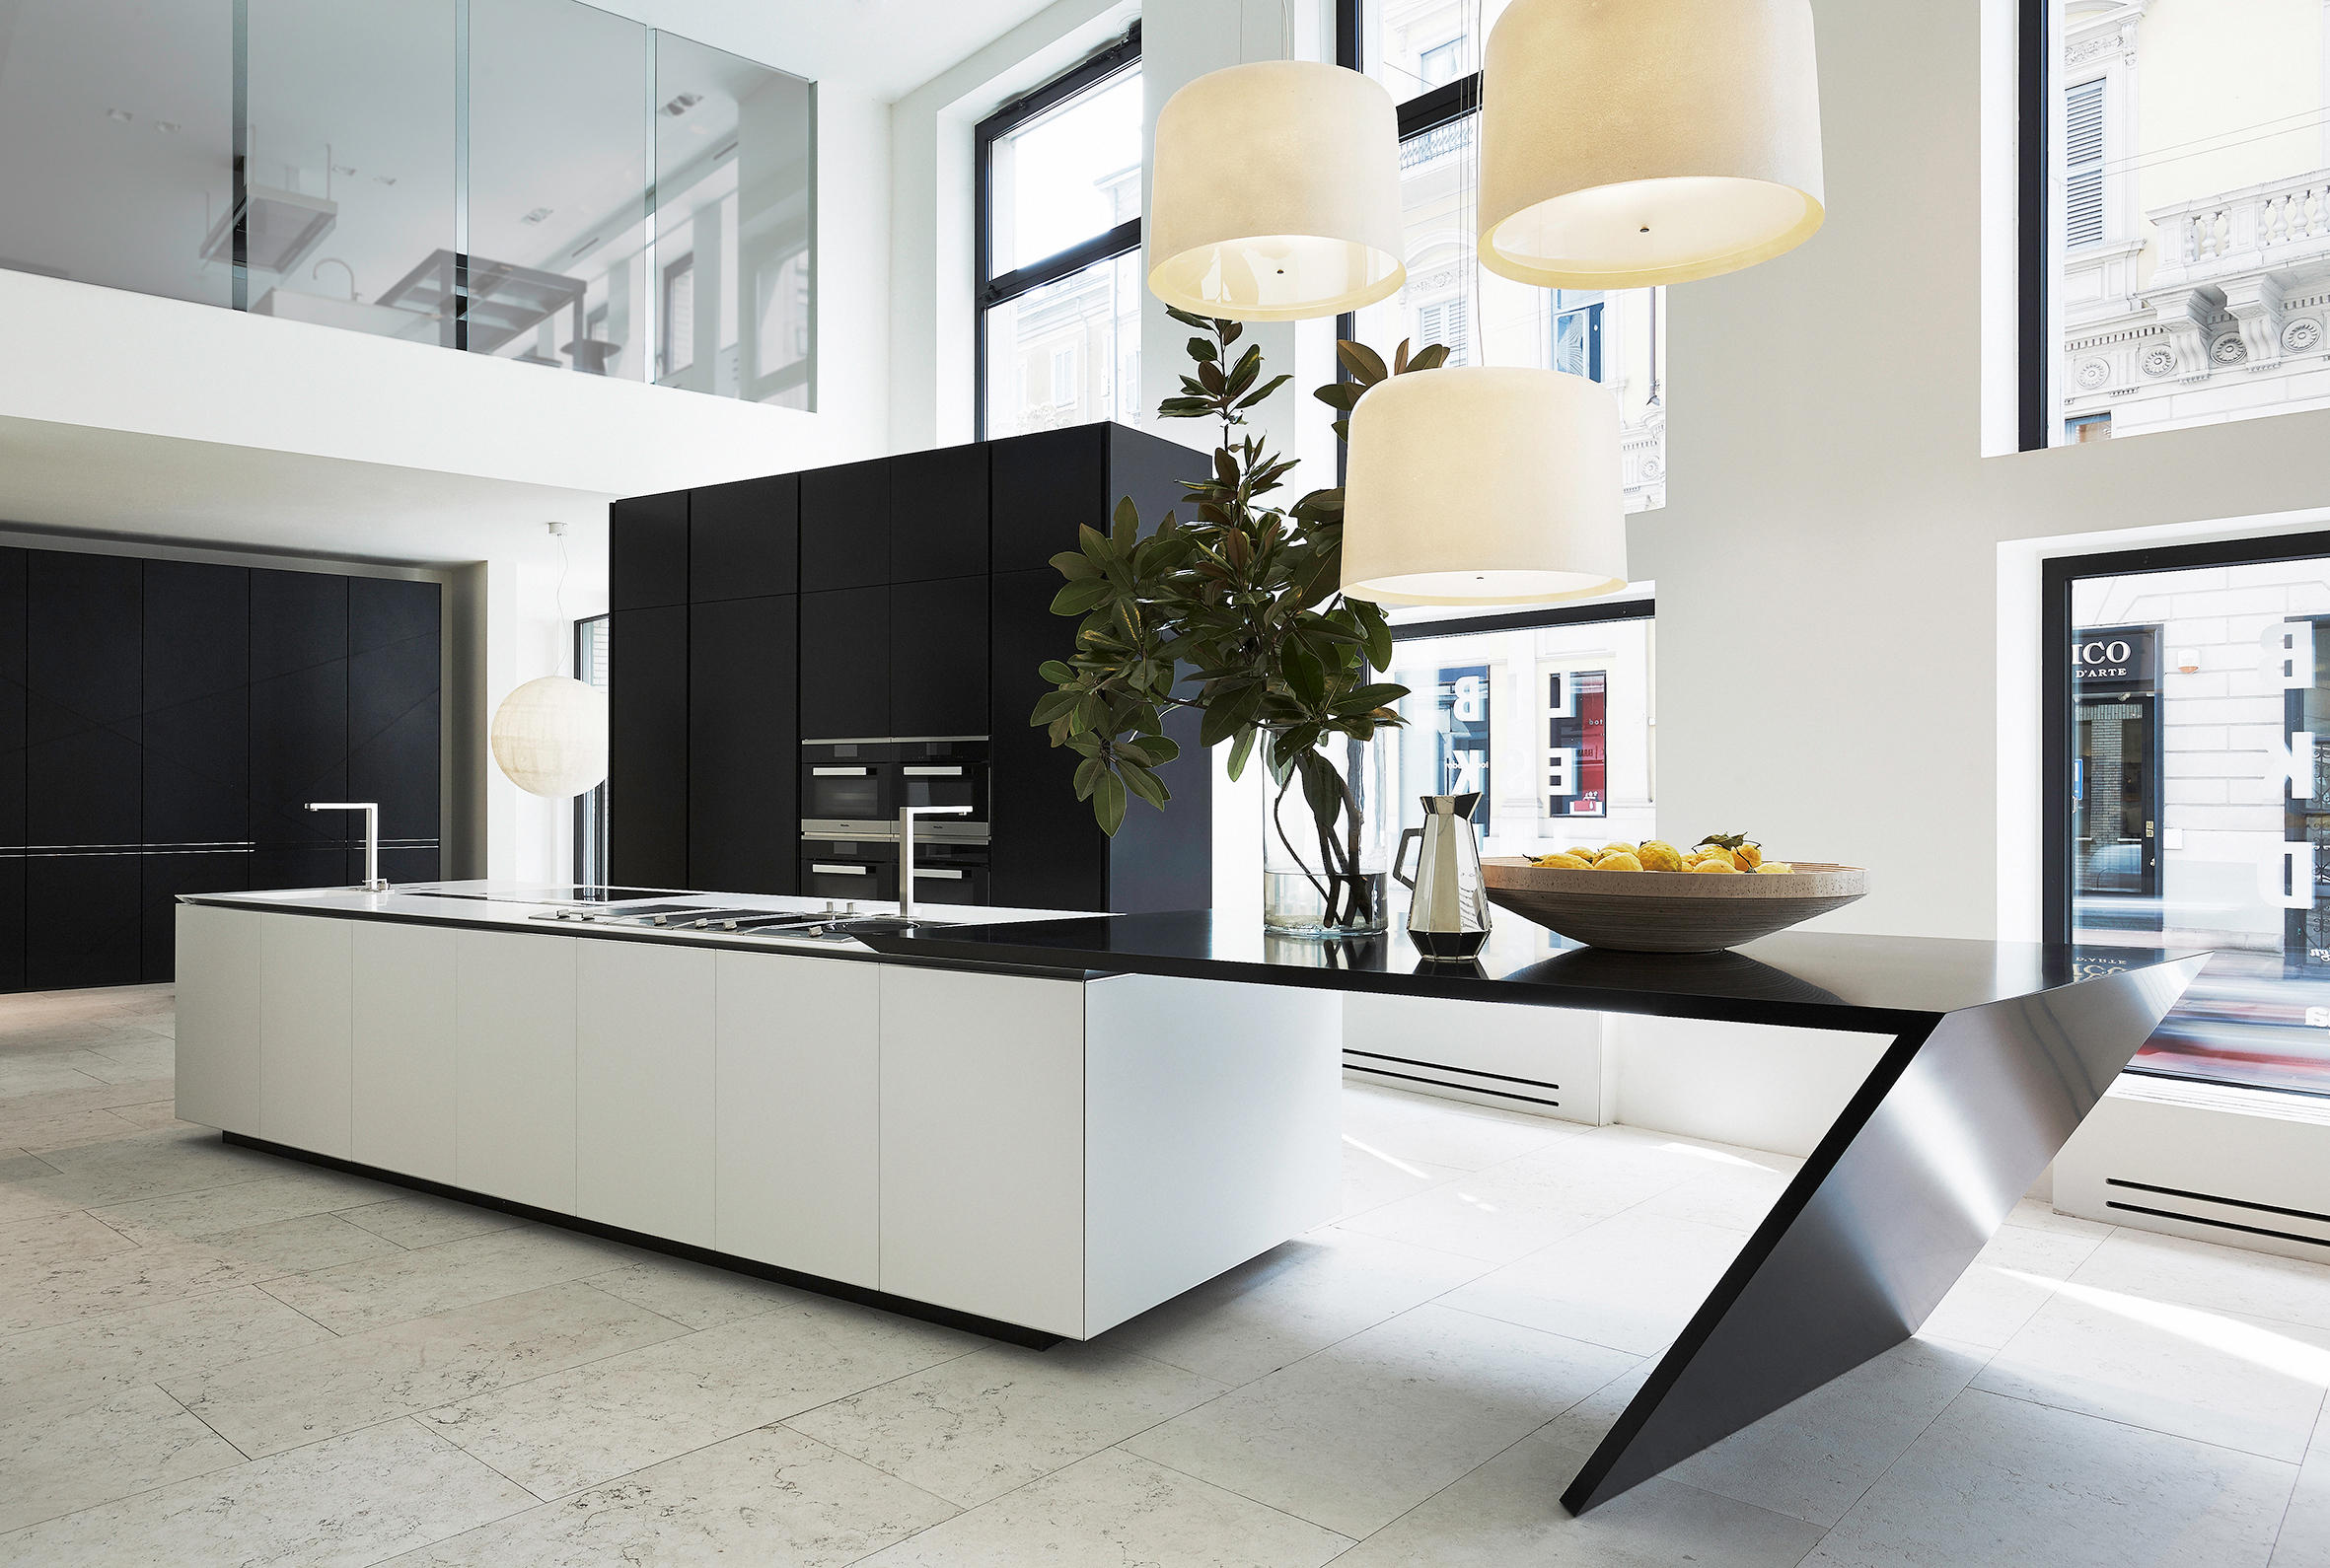 Sharp Island Kitchens From Varenna Poliform Architonic